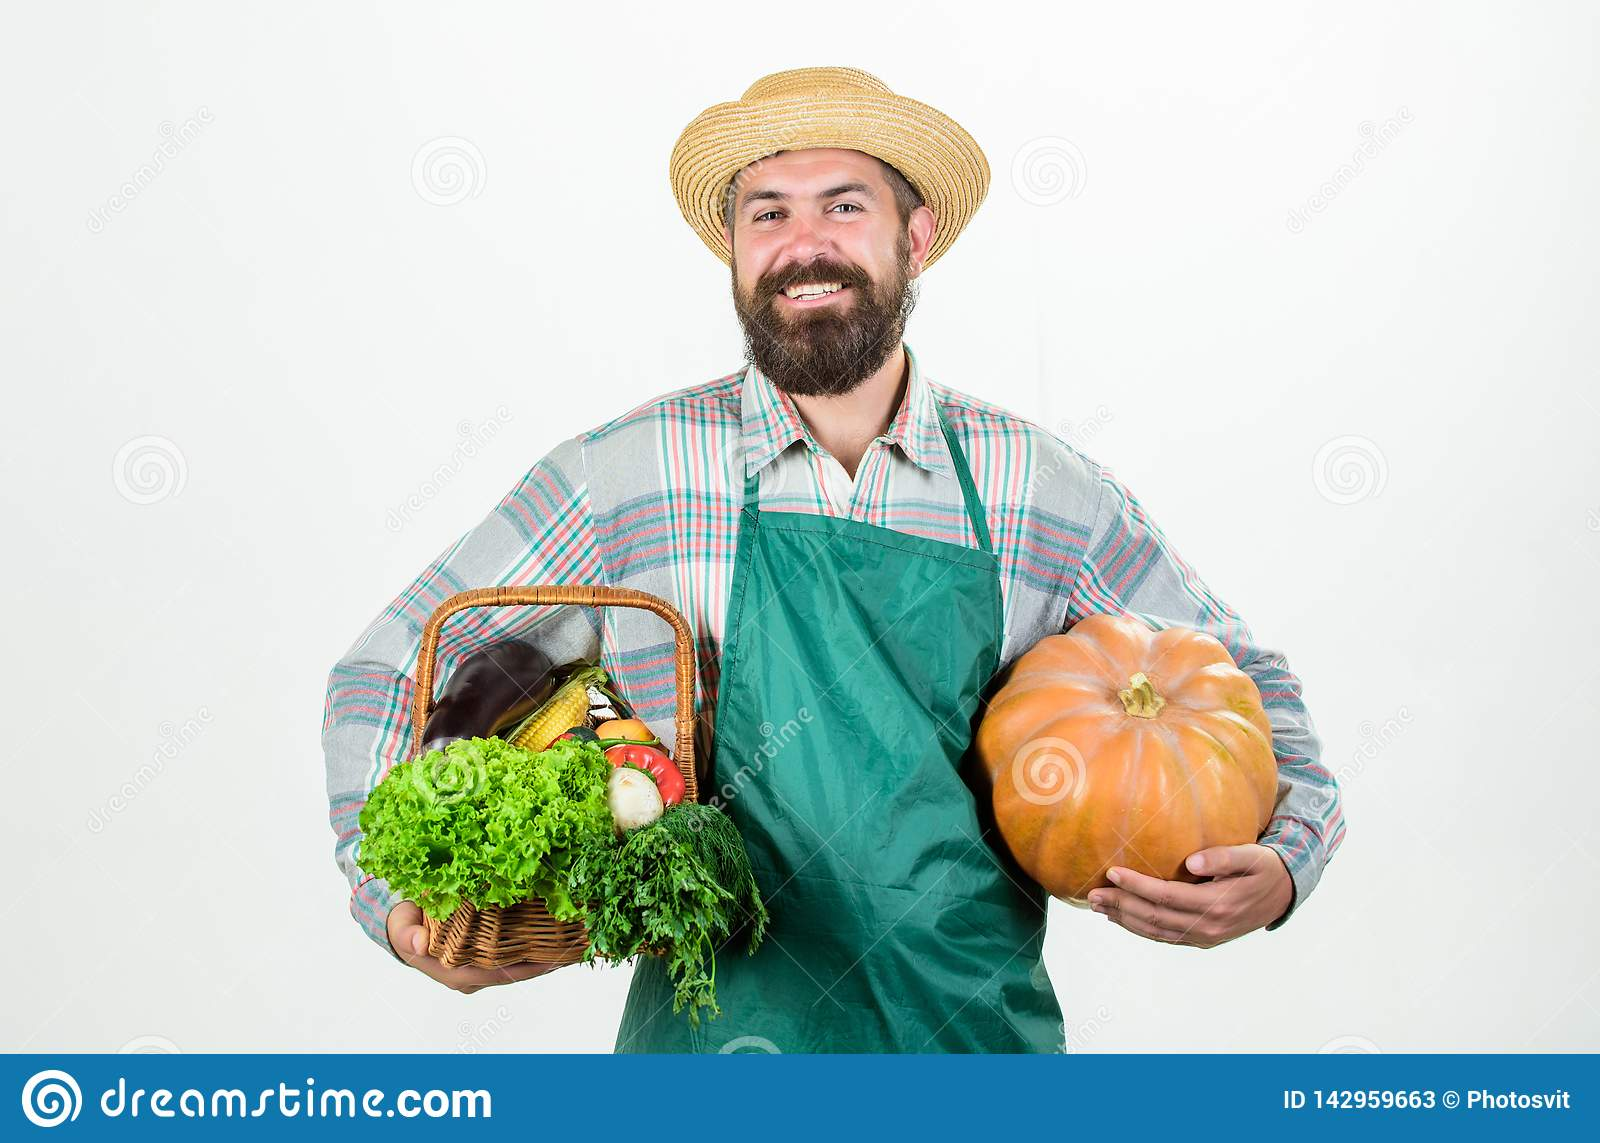 Carrying a healthy bag. organic and natural food. happy halloween. man chef with rich autumn crop. seasonal vitamin food